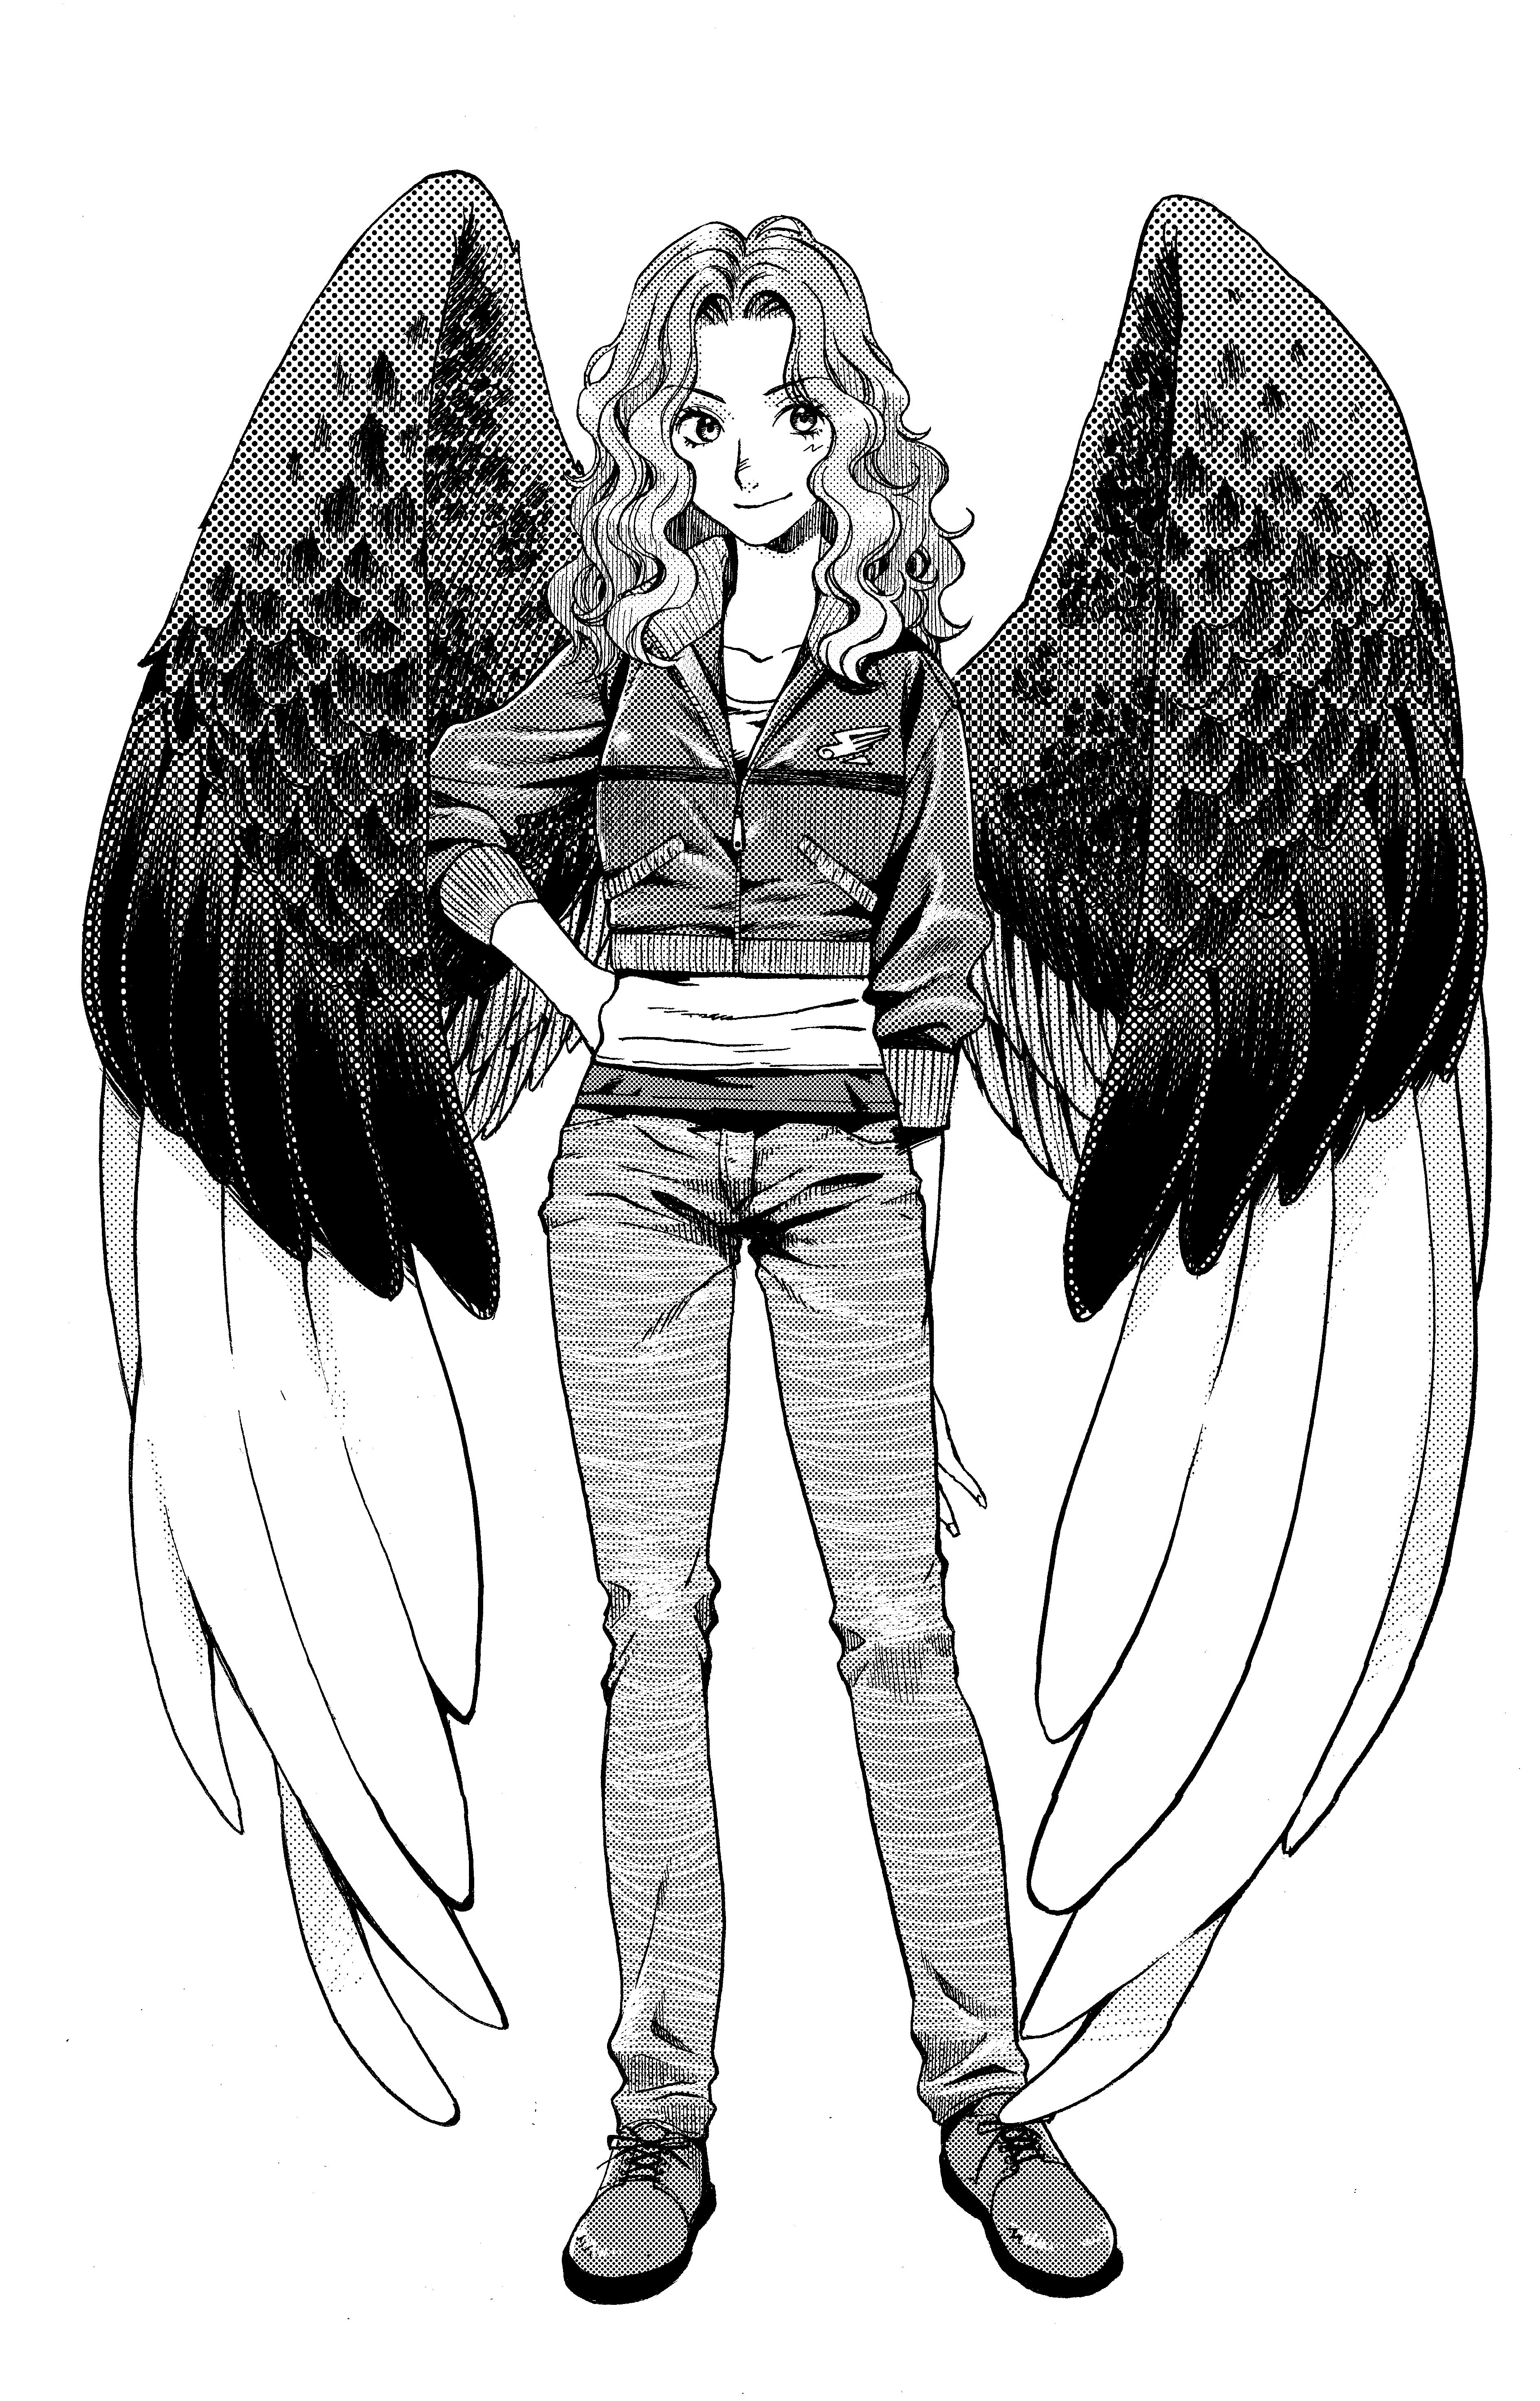 Character Design For Max Of The Maximum Ride Manga Series